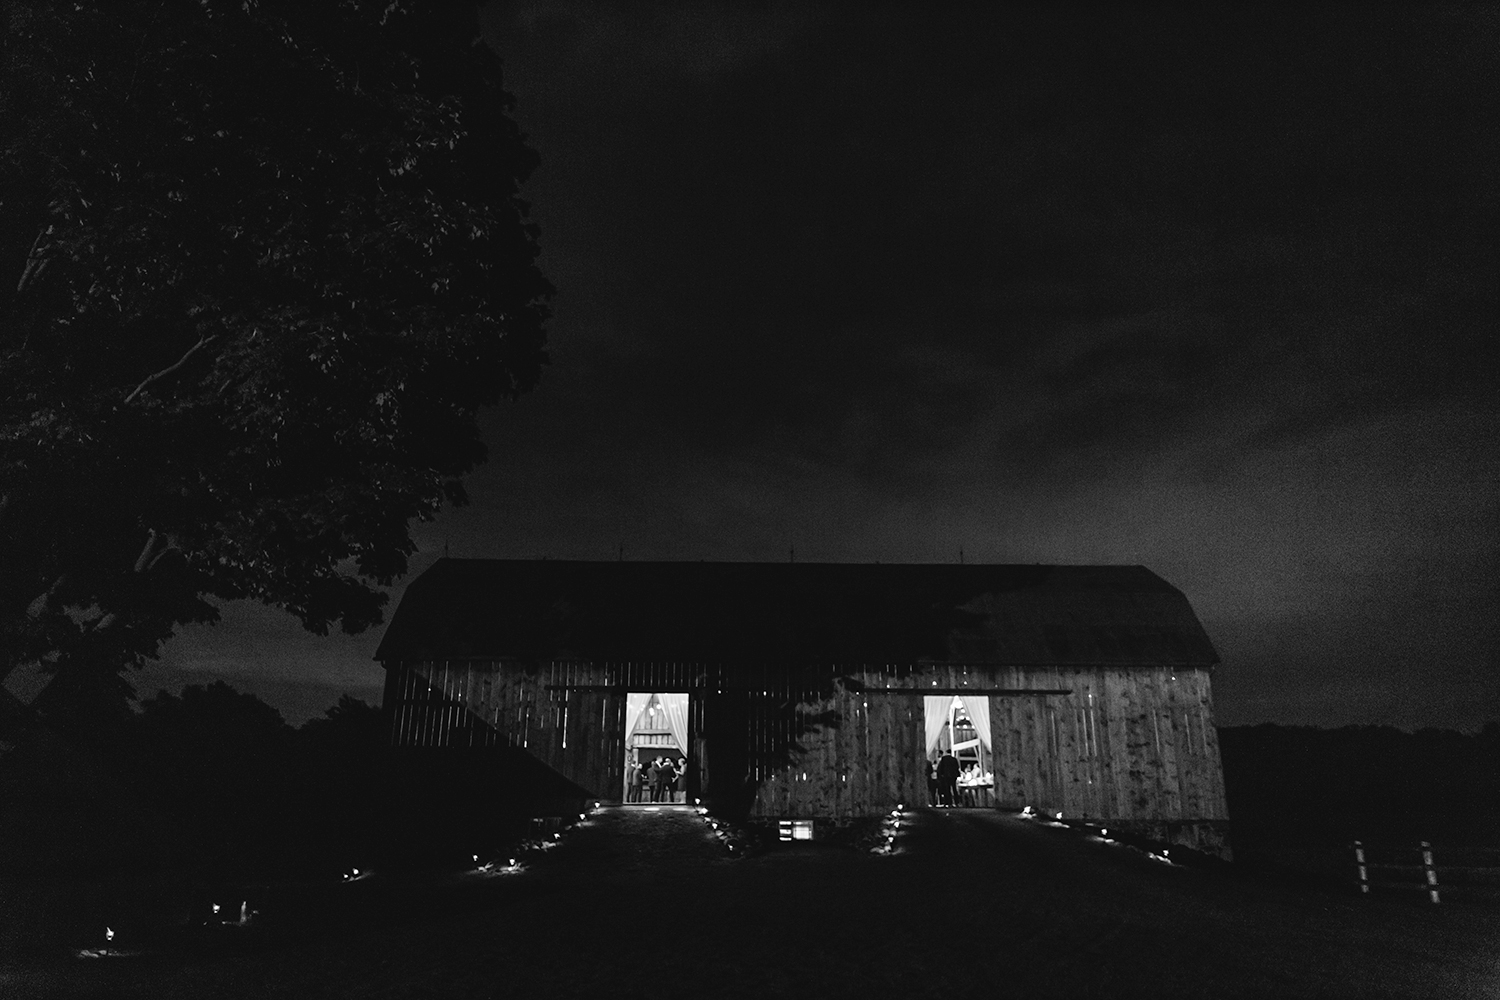 Candid-Toronto-Wedding-Photographers-Photojournalistic-Wedding-Photography-in-Toronto-Ryanne-Hollies-bradford-barn-best-dancing-photos-best-toronto-area-barn-venue-photo-of-barn-at-night.jpg